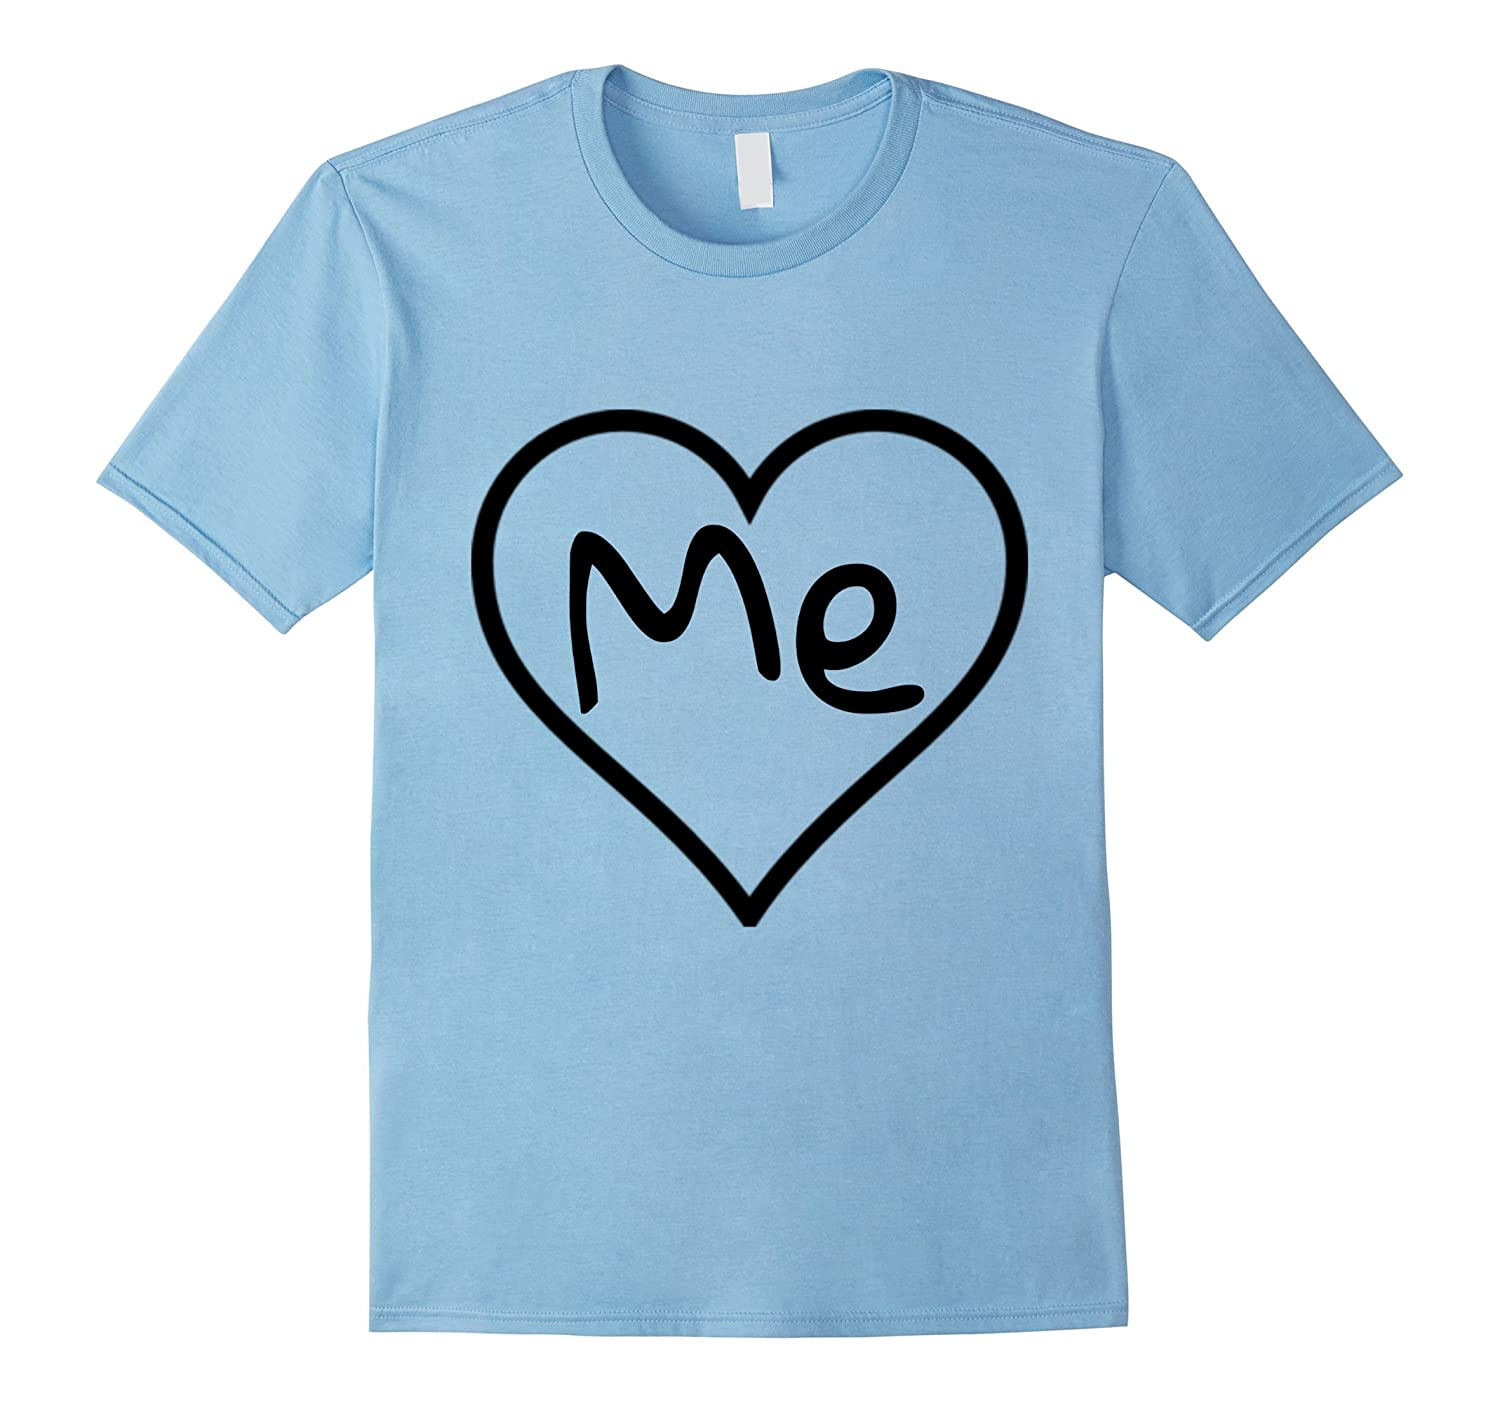 I Love Me T-Shirt – Self Motivating – It's All About You